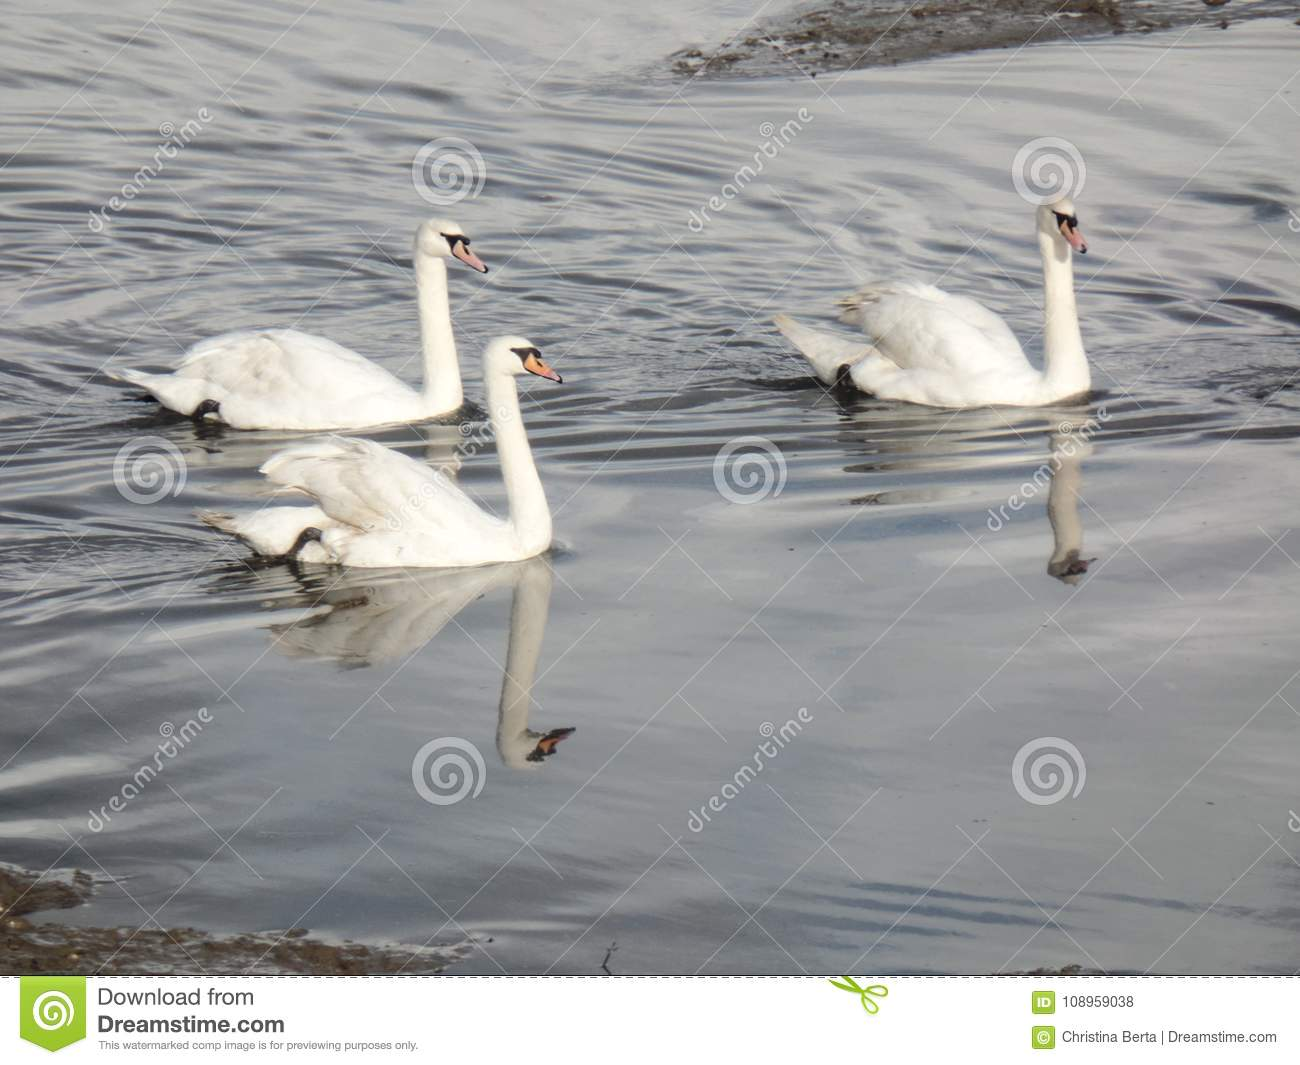 Three white swans in the river